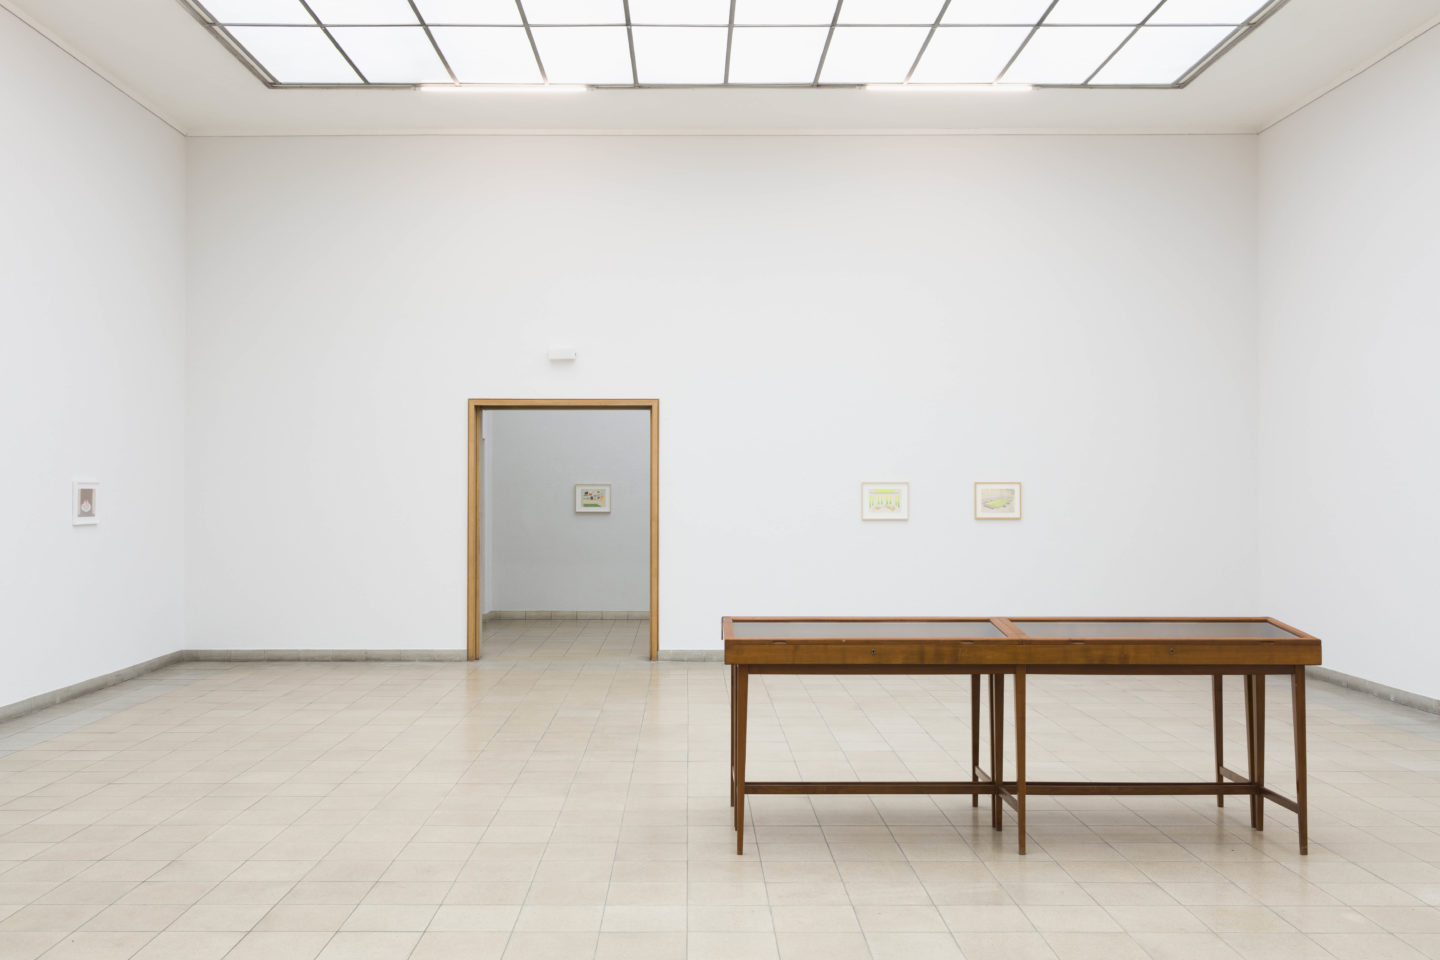 """Exhibition View Marta Riniker-Radich """"We, on the Other Hand, Can Do Everything Remotely, 2018"""" at Kunsthaus Glarus / Photo: Gunnar Meier / Courtesy: the artist"""